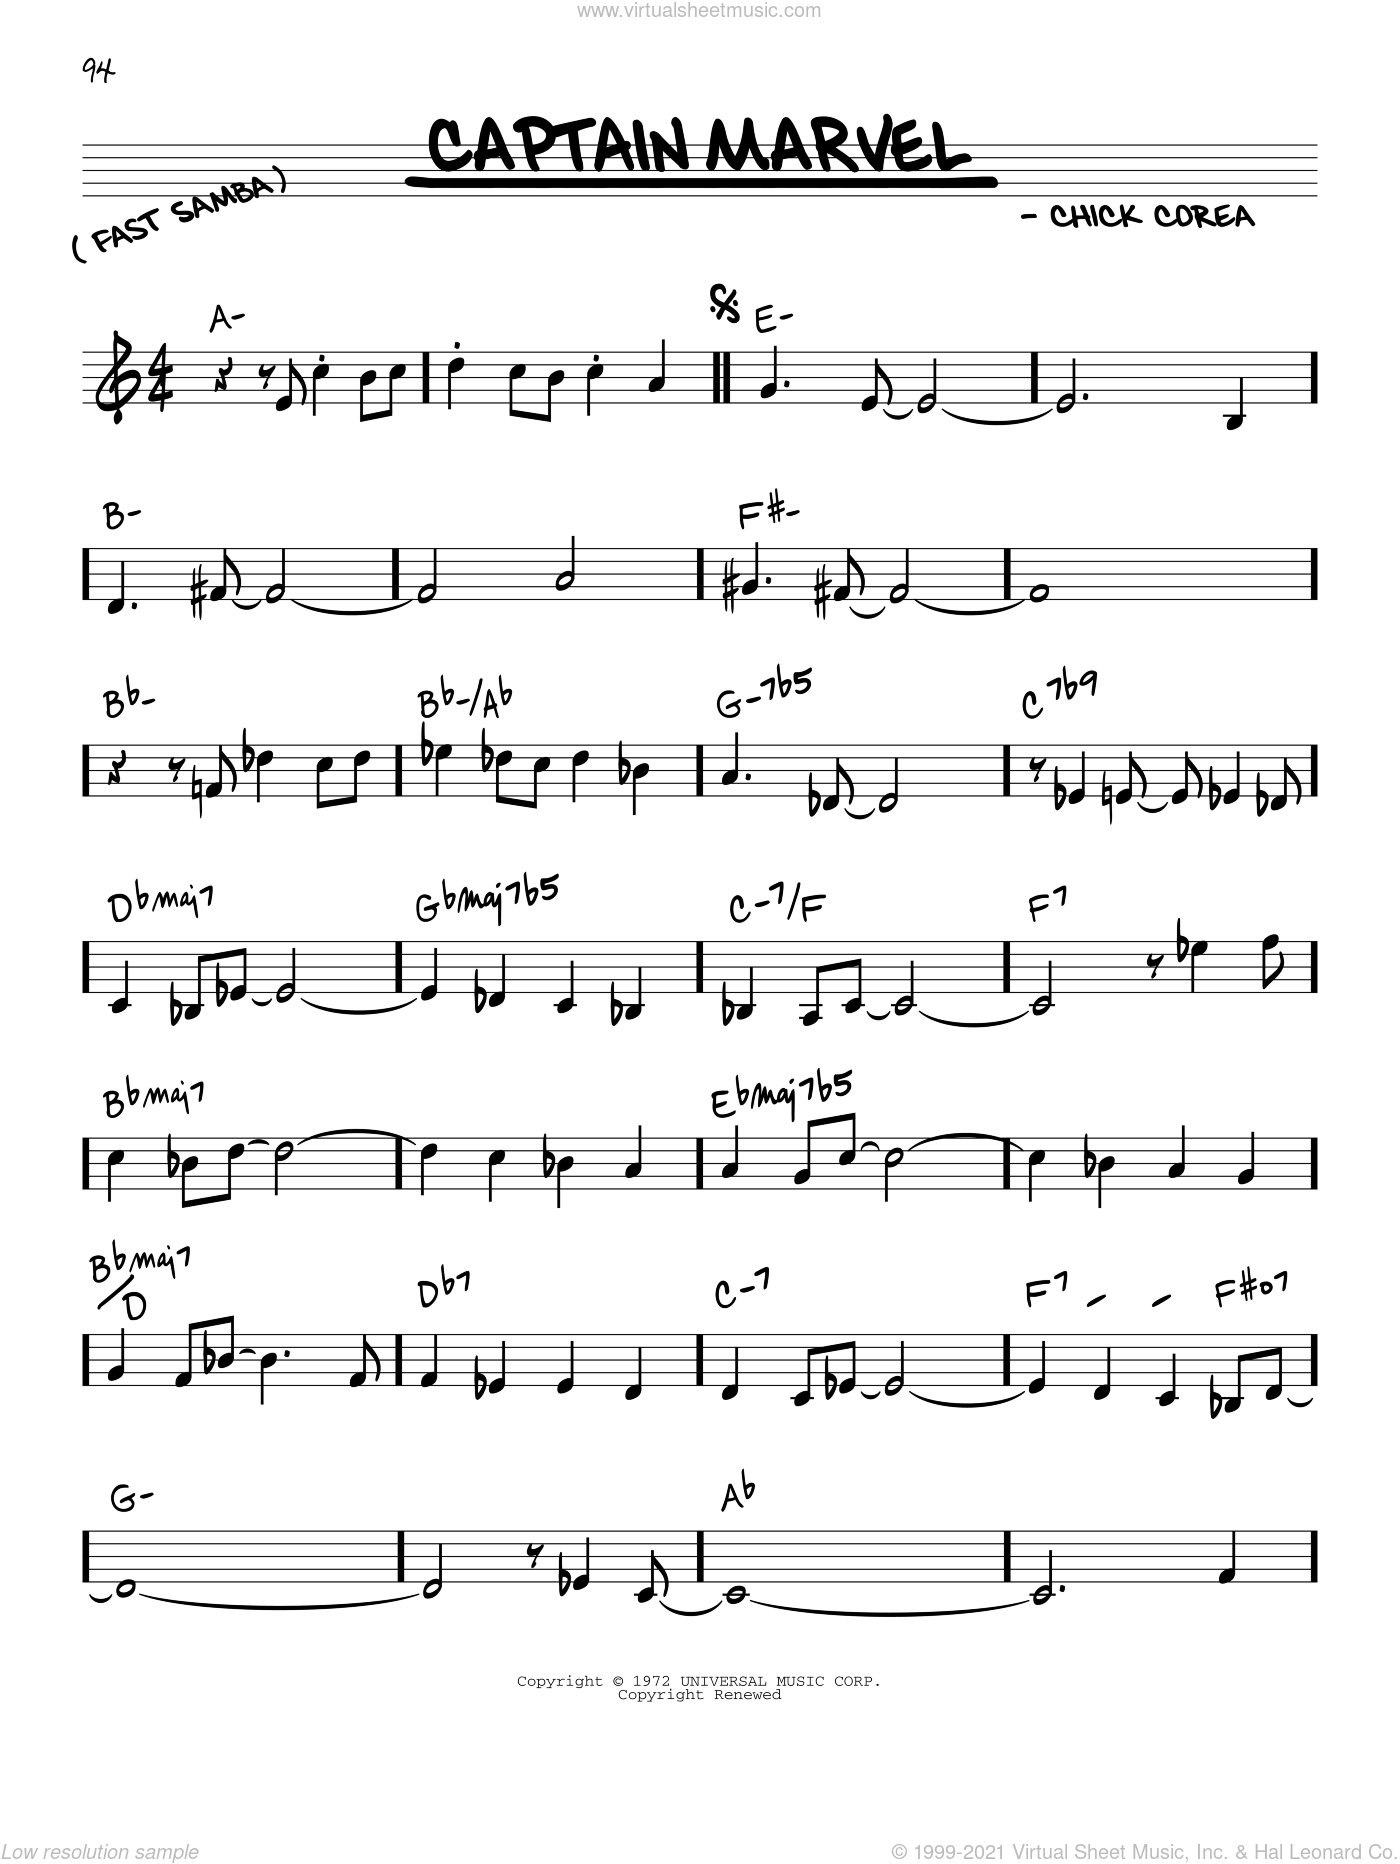 Captain Marvel sheet music for voice and other instruments (C) by Chick Corea